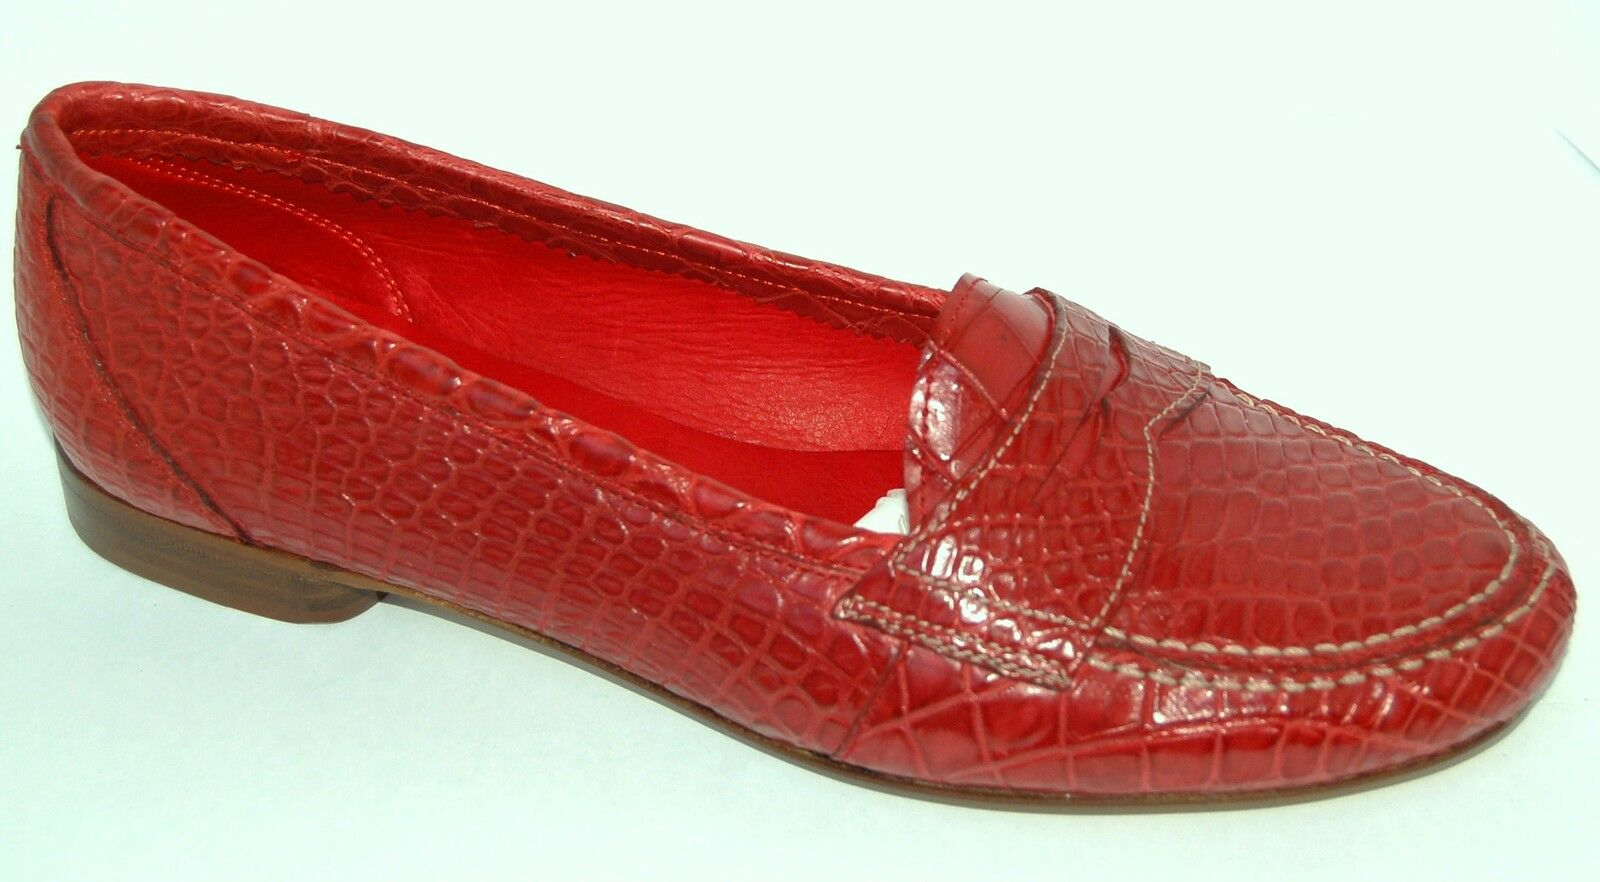 WOMAN - PENNY LOAFER - 37 - GENUINE RED ALLIGATOR - LEATHER SOLE - LOW HEEL